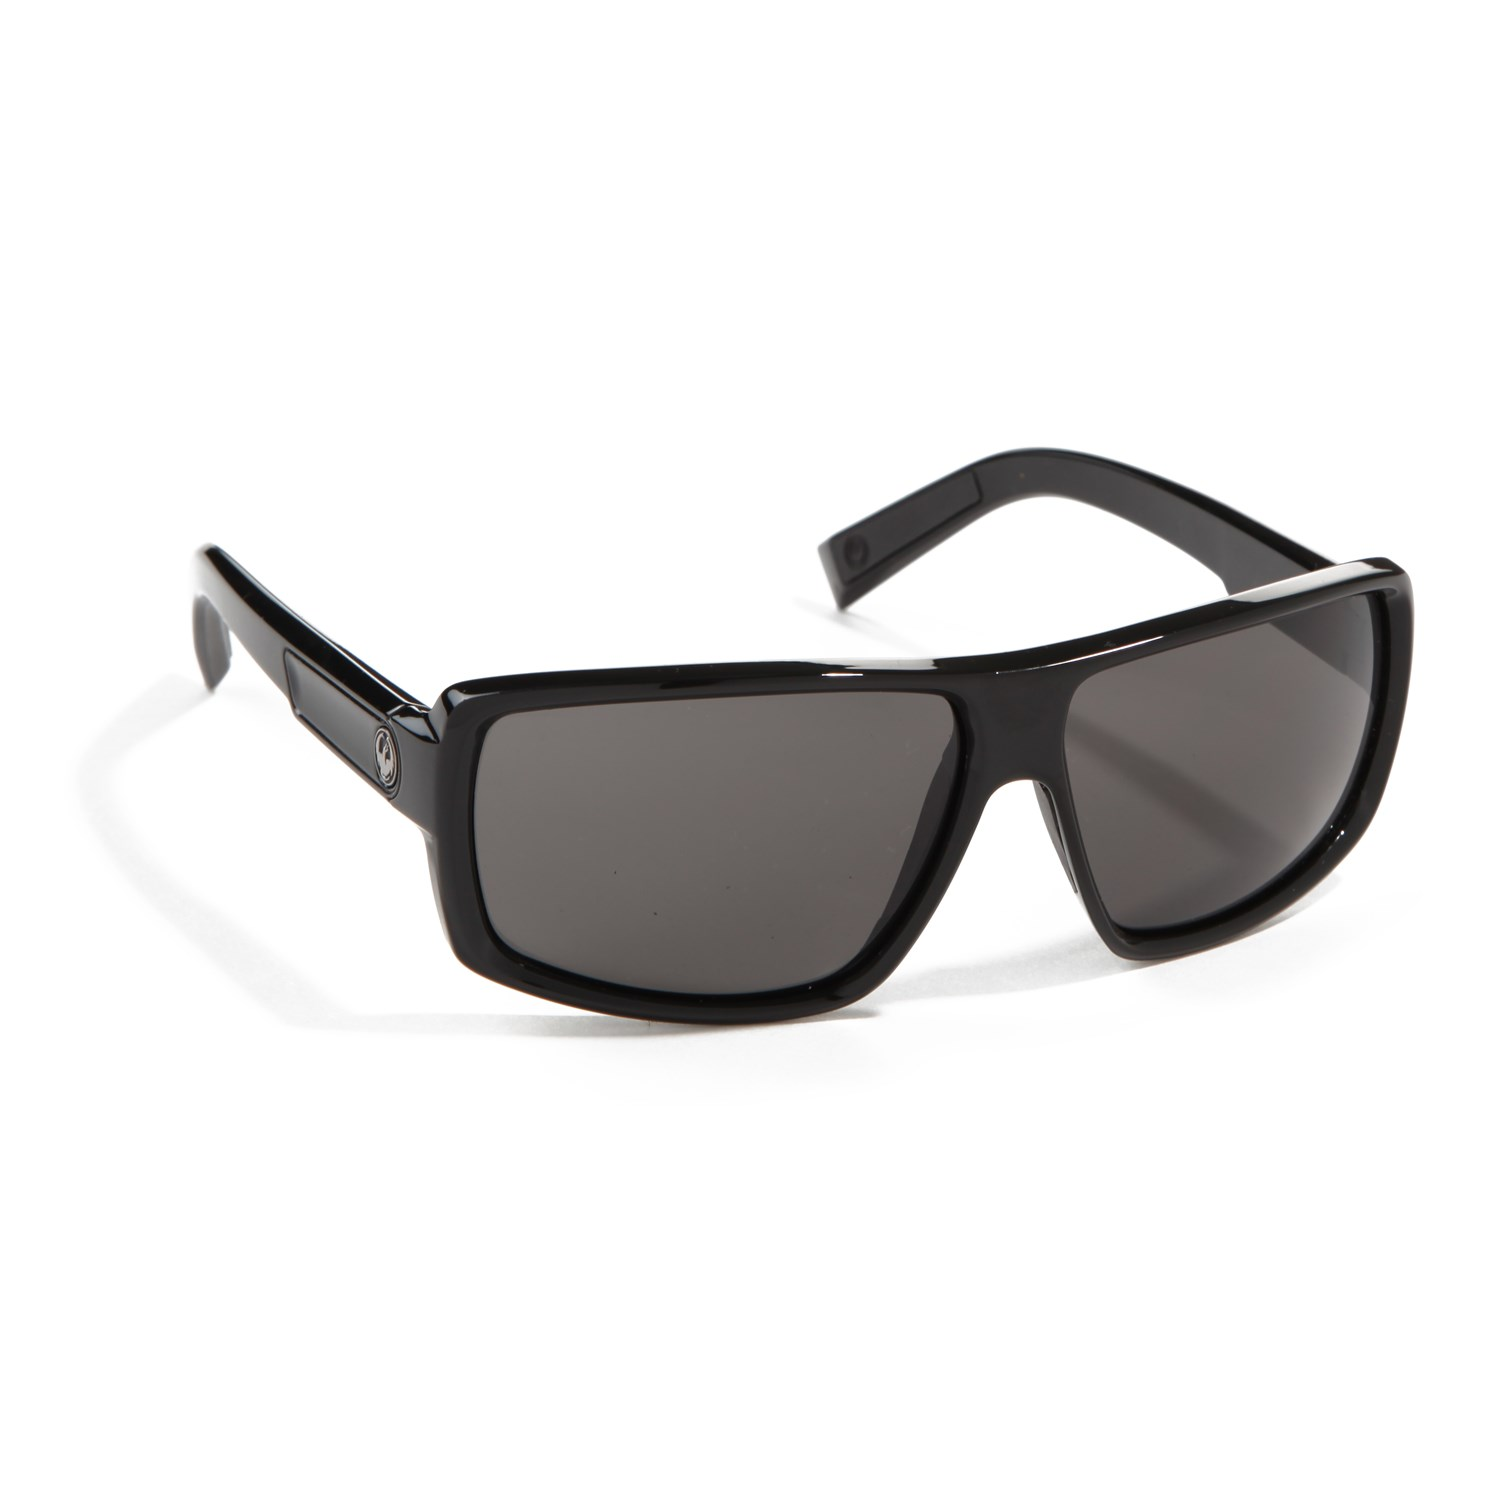 b5791212c3 Dragon Double Dos Sunglasses